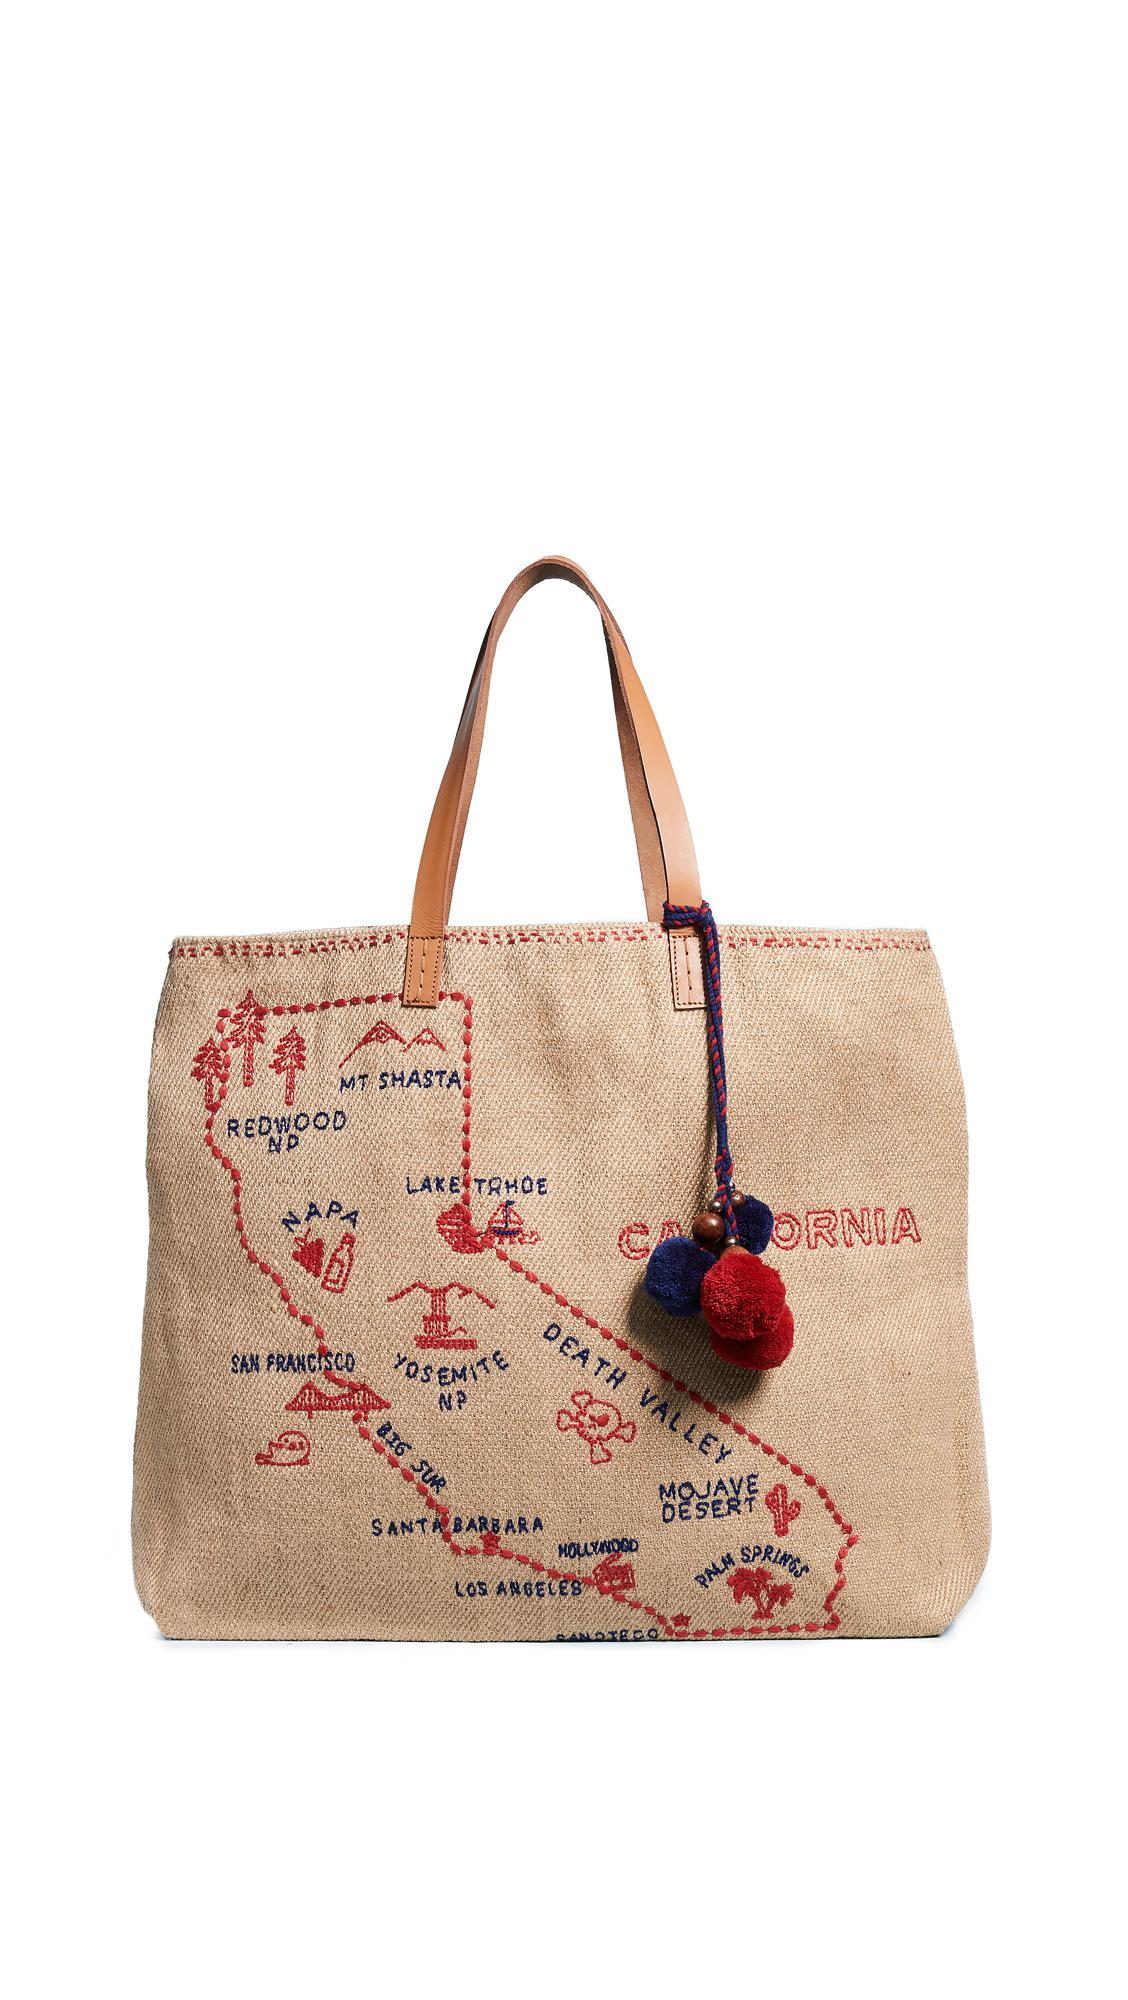 Tote Bag - Bird Equation by VIDA VIDA Free Shipping Wholesale Price 2018 New For Sale qjsnEv